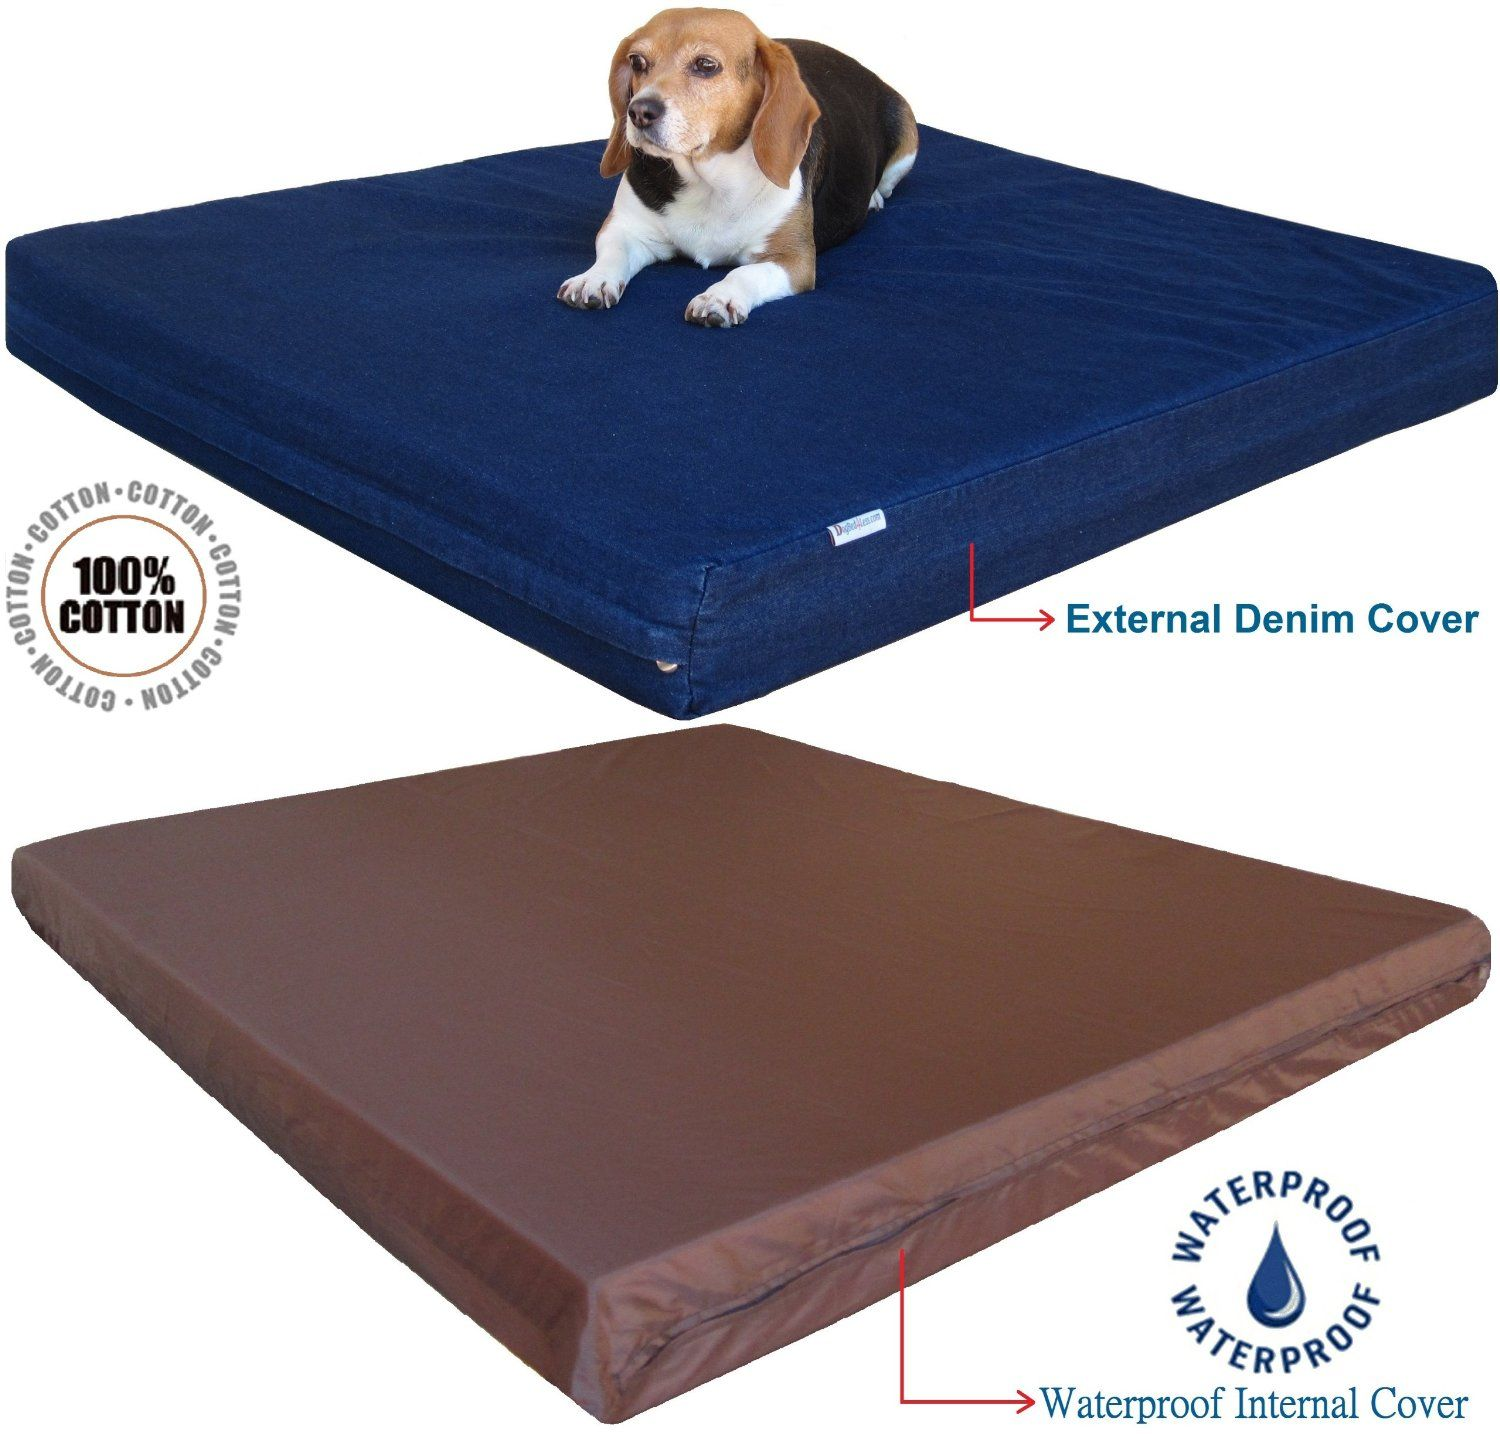 Extra Large Orthopedic Memory Foam Pet Dog